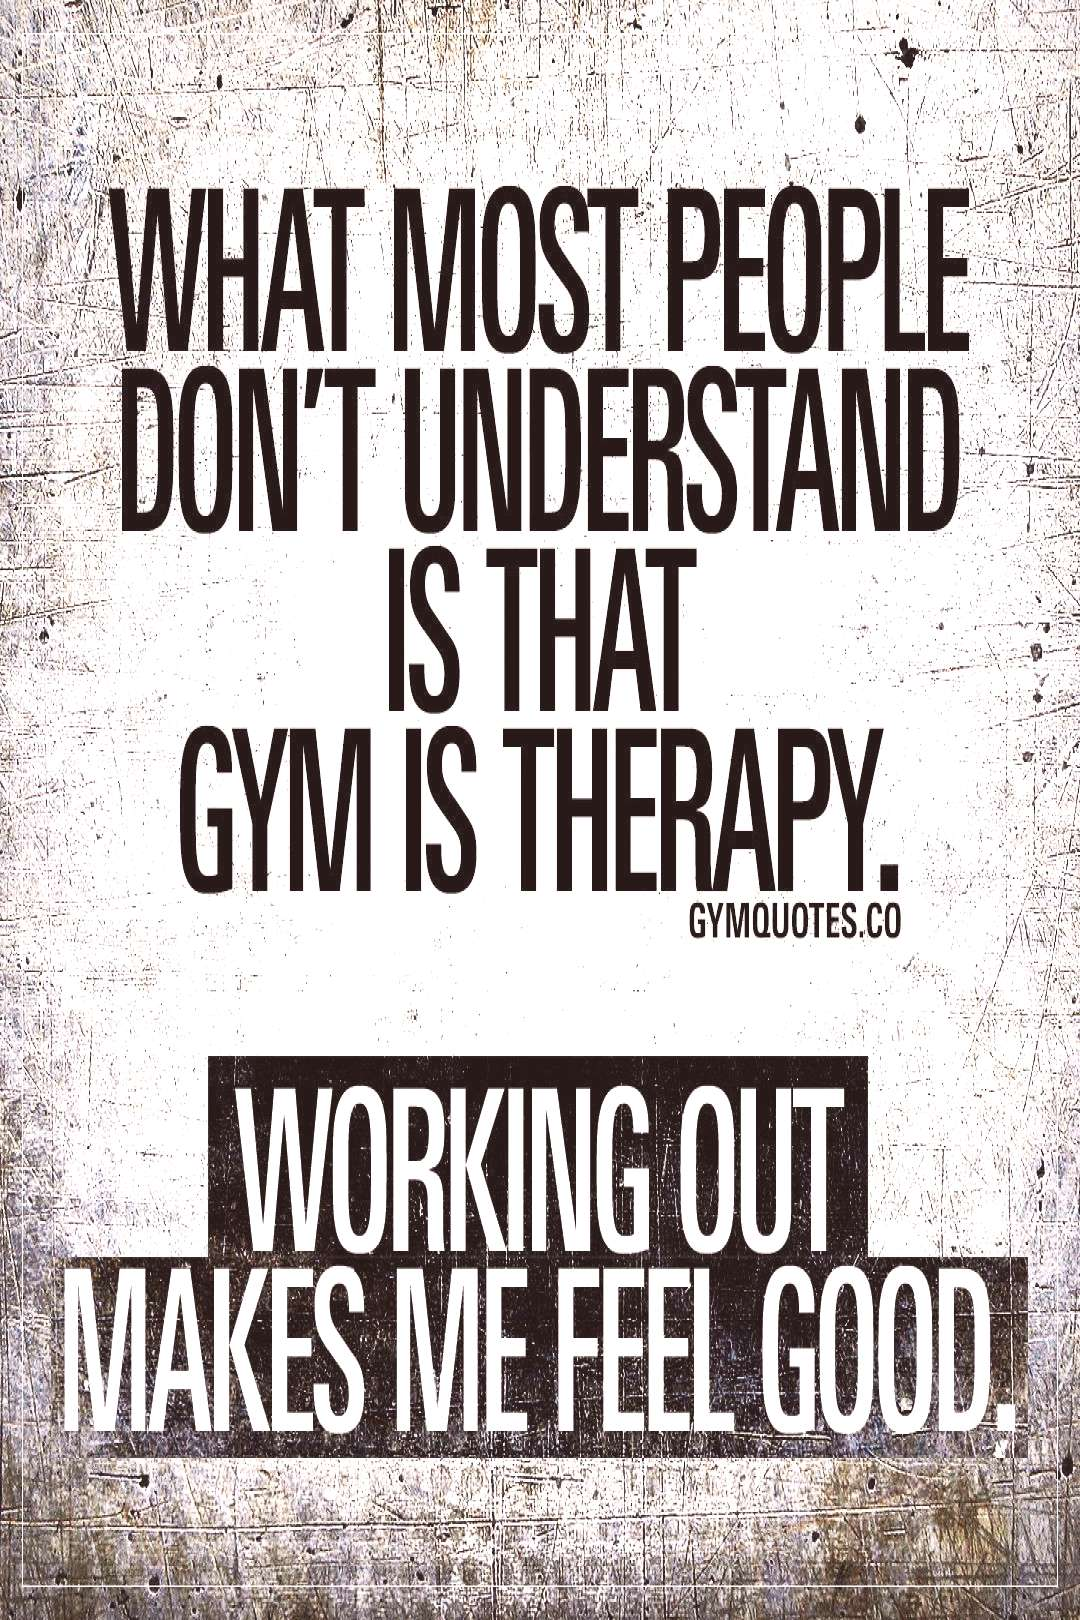 What most people don't understand is that gym is therapy. - fitness motivation -